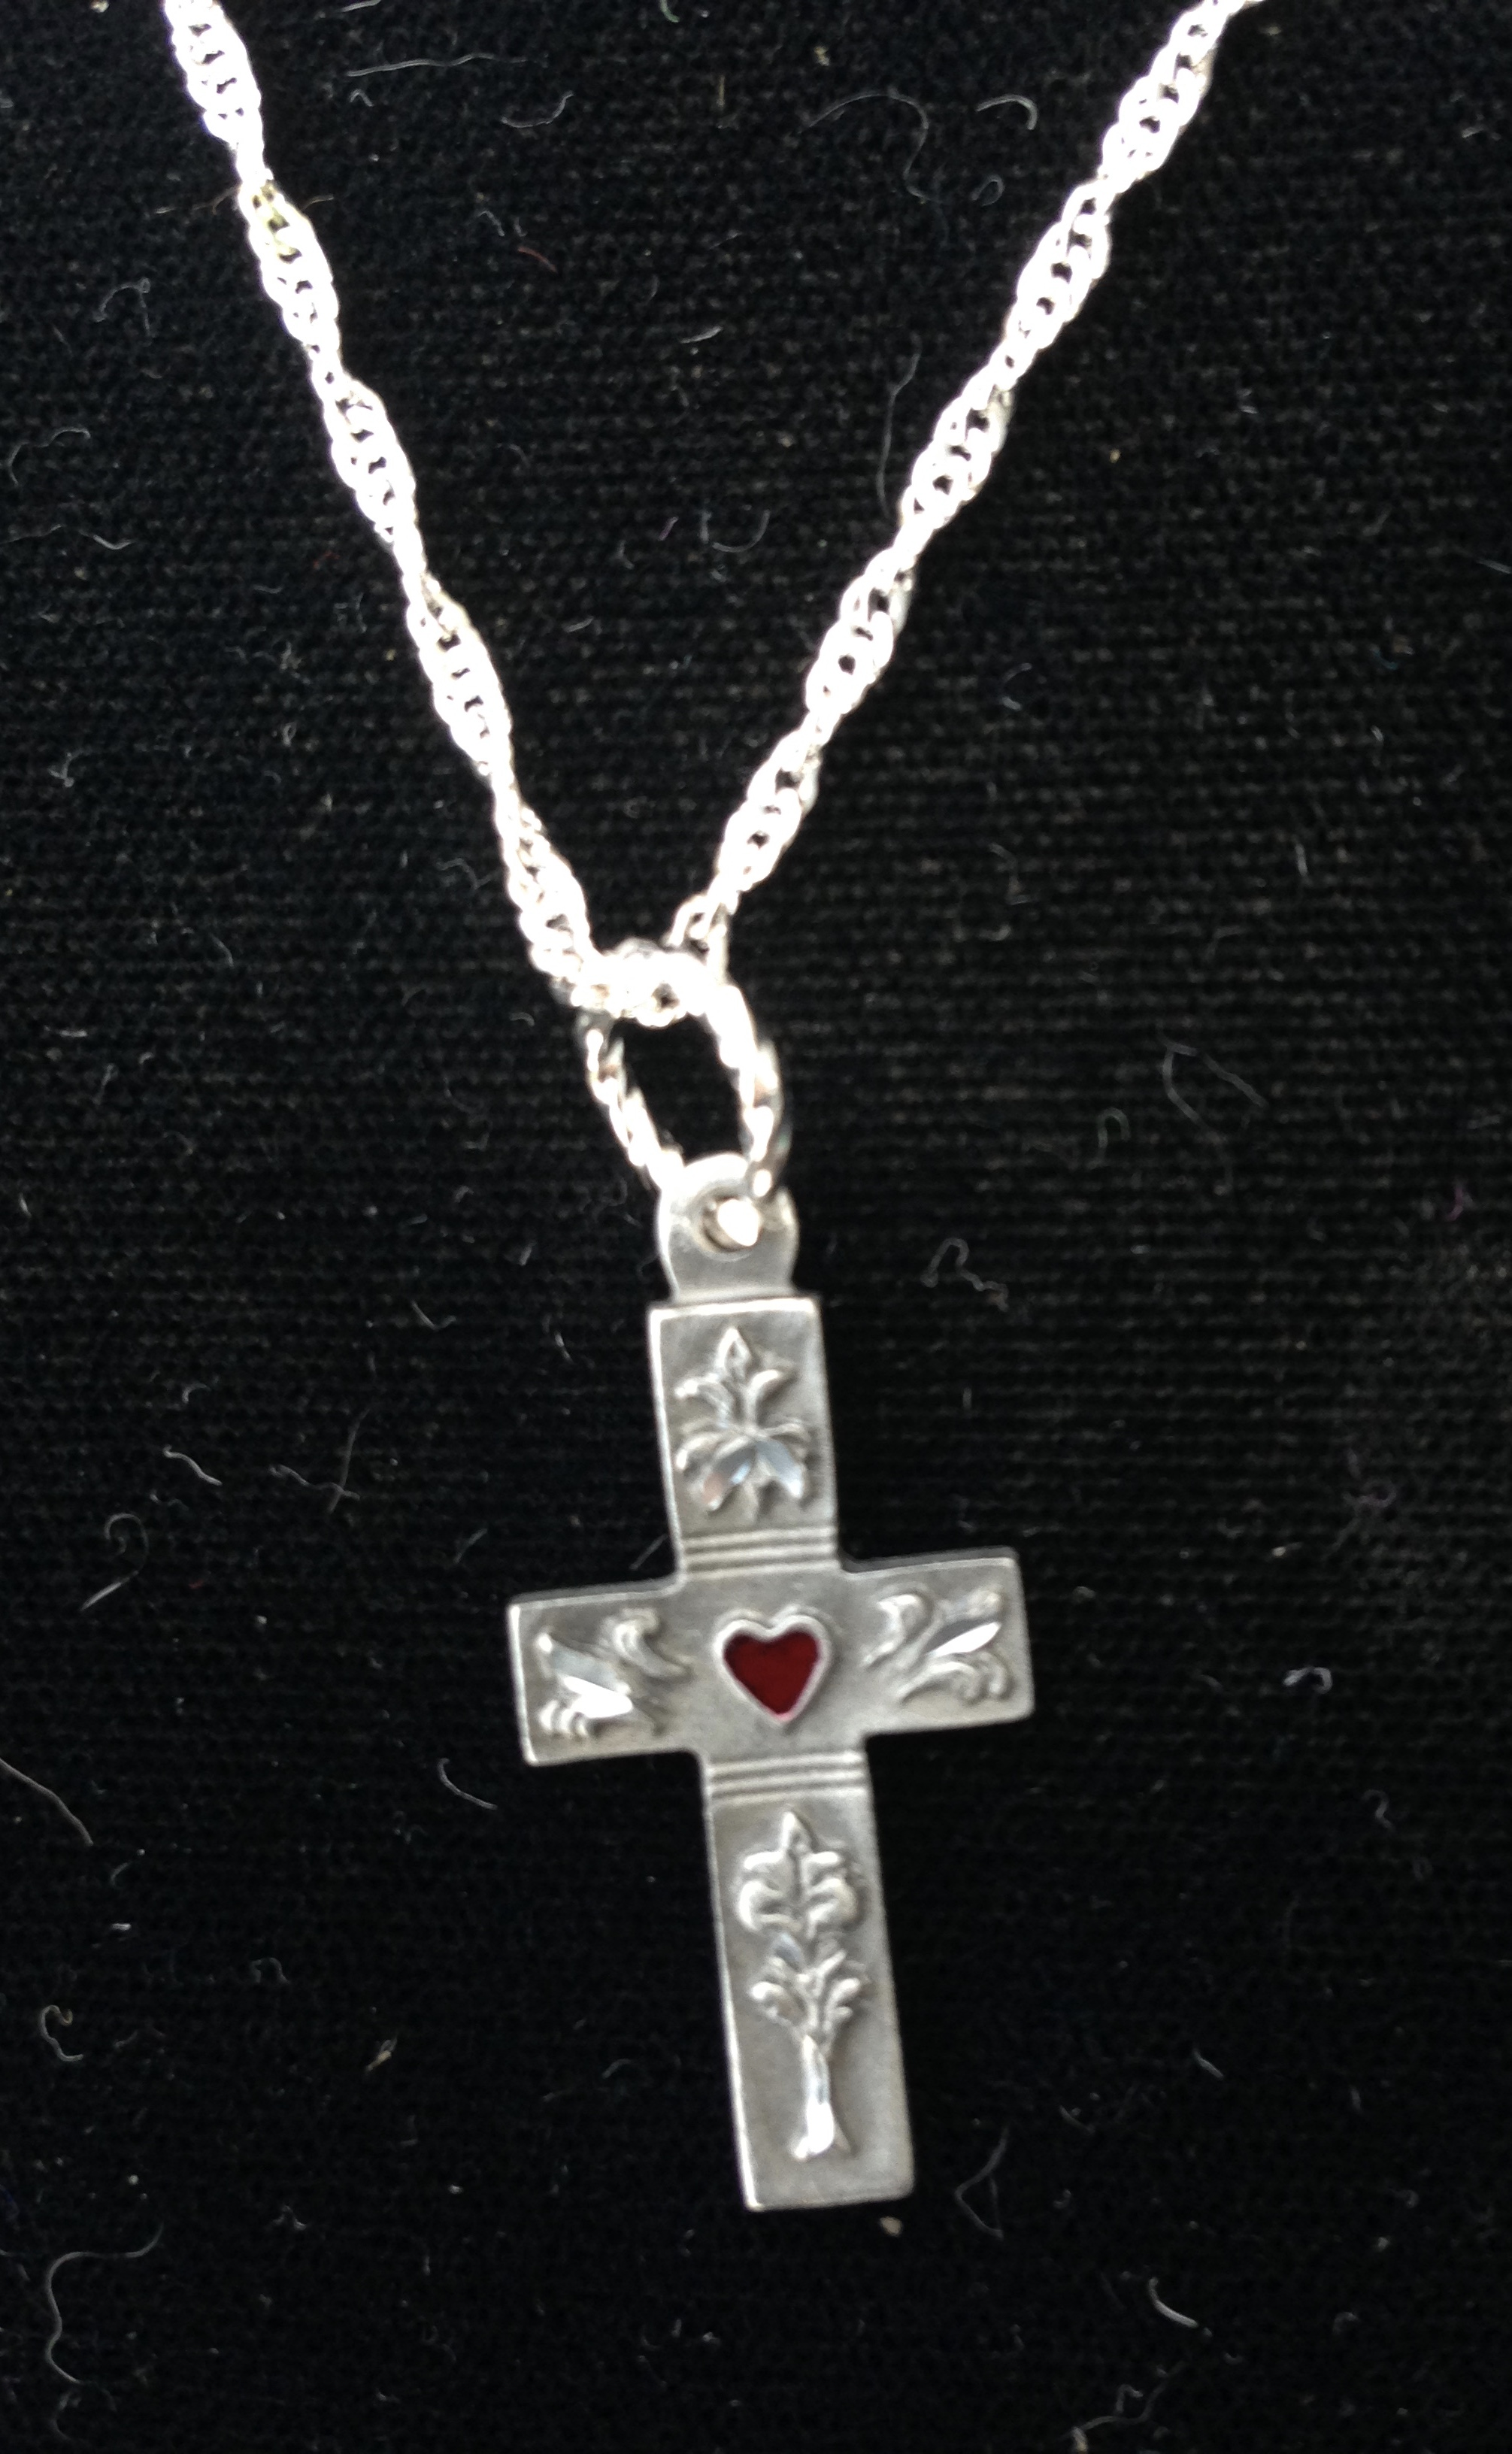 Pewter Cross with Heart in Center